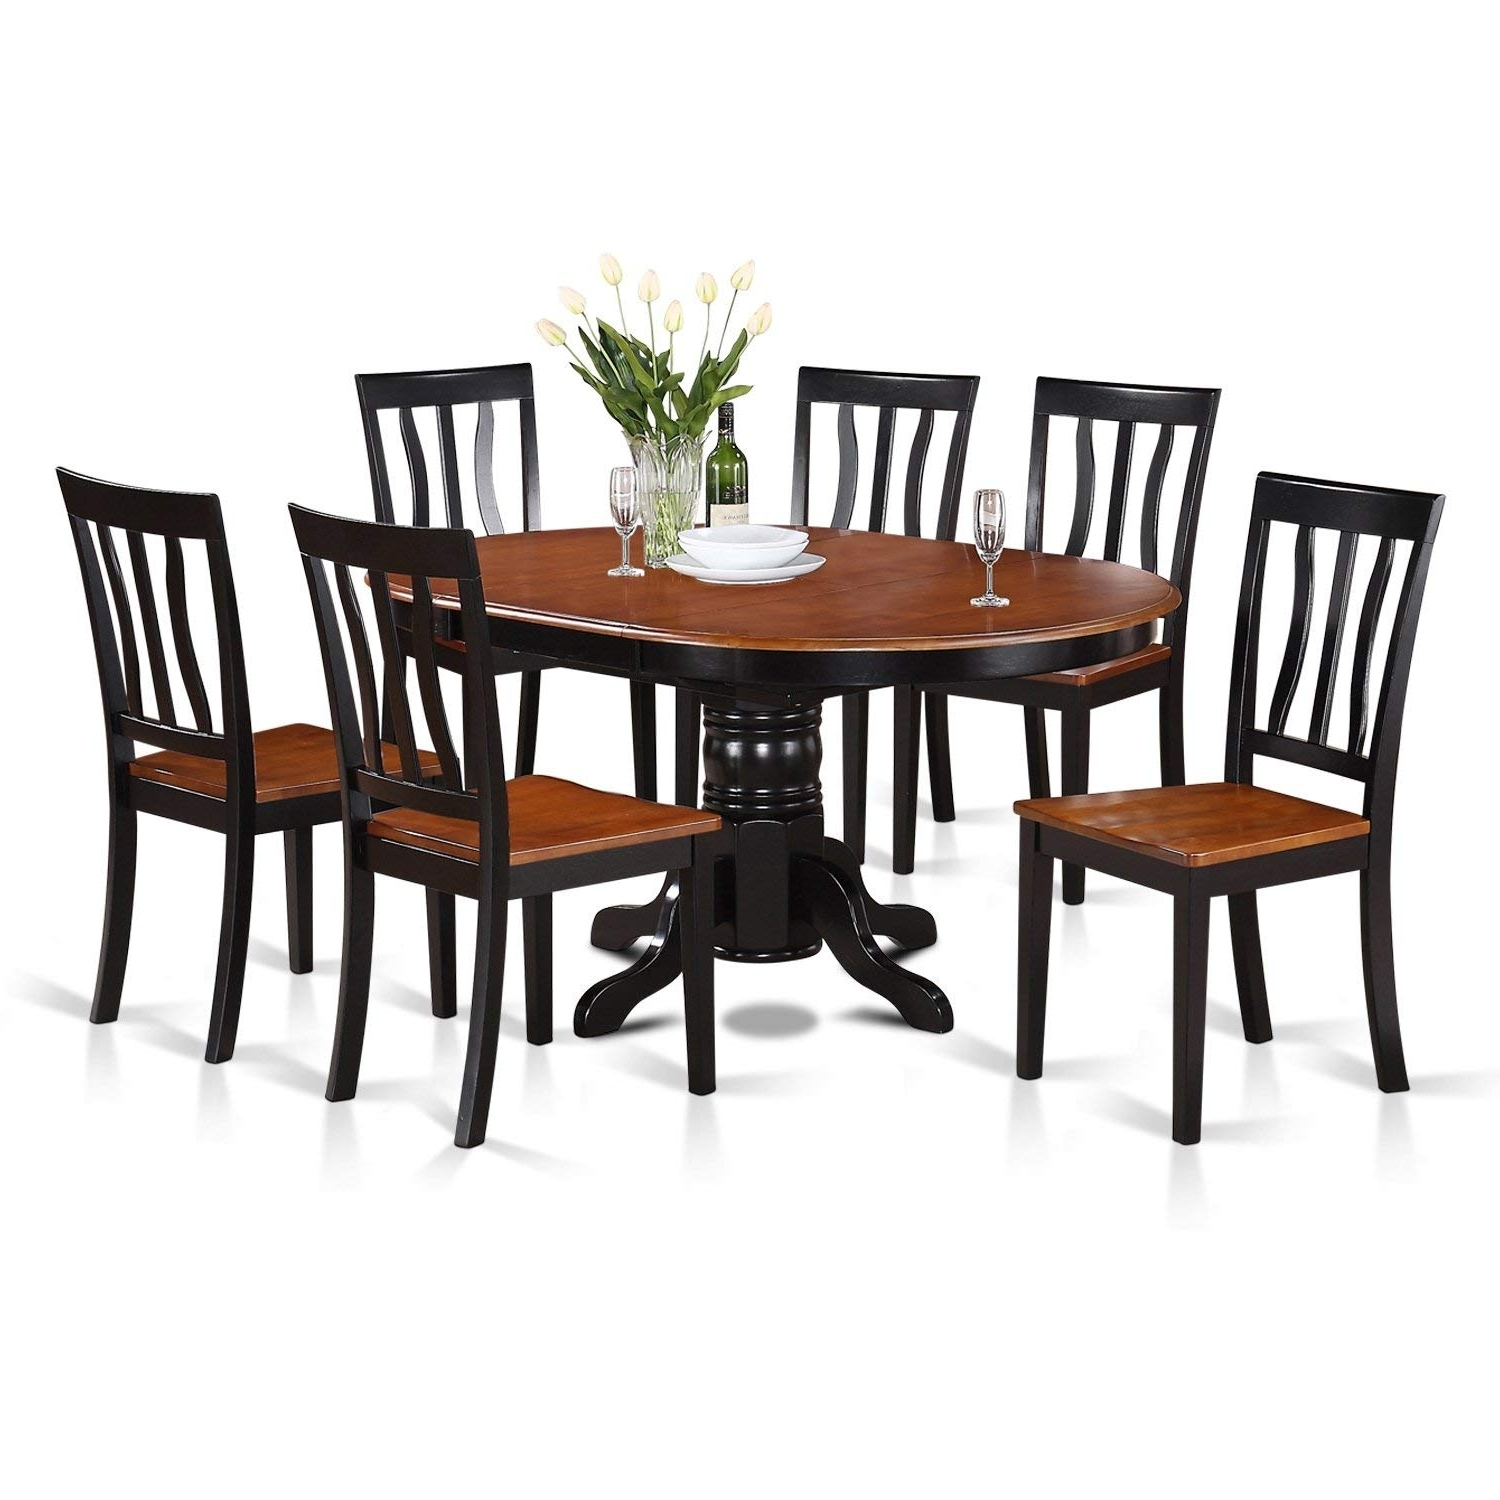 Cheap Dining Room Chairs With Current Amazon: East West Furniture Avat7 Blk W 7 Piece Dining Table Set (View 1 of 25)